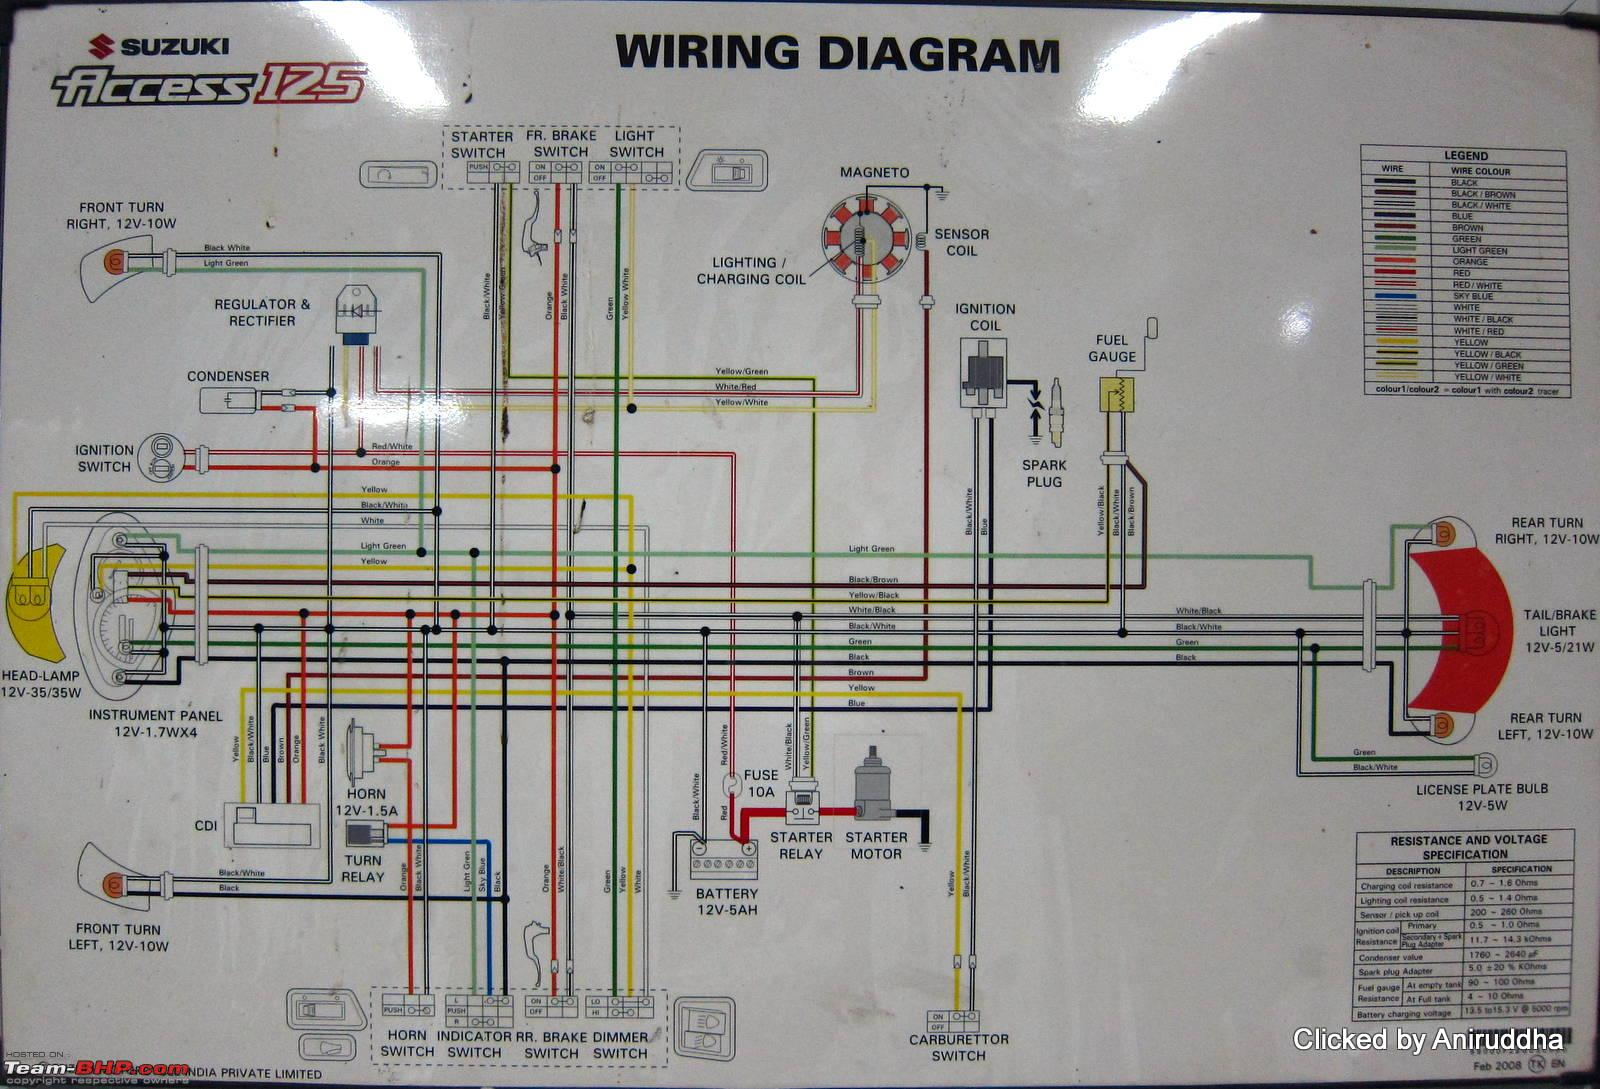 honda 125 motorcycle wiring diagram car led strip circuit diagrams of indian motorcycles and scooters team bhp